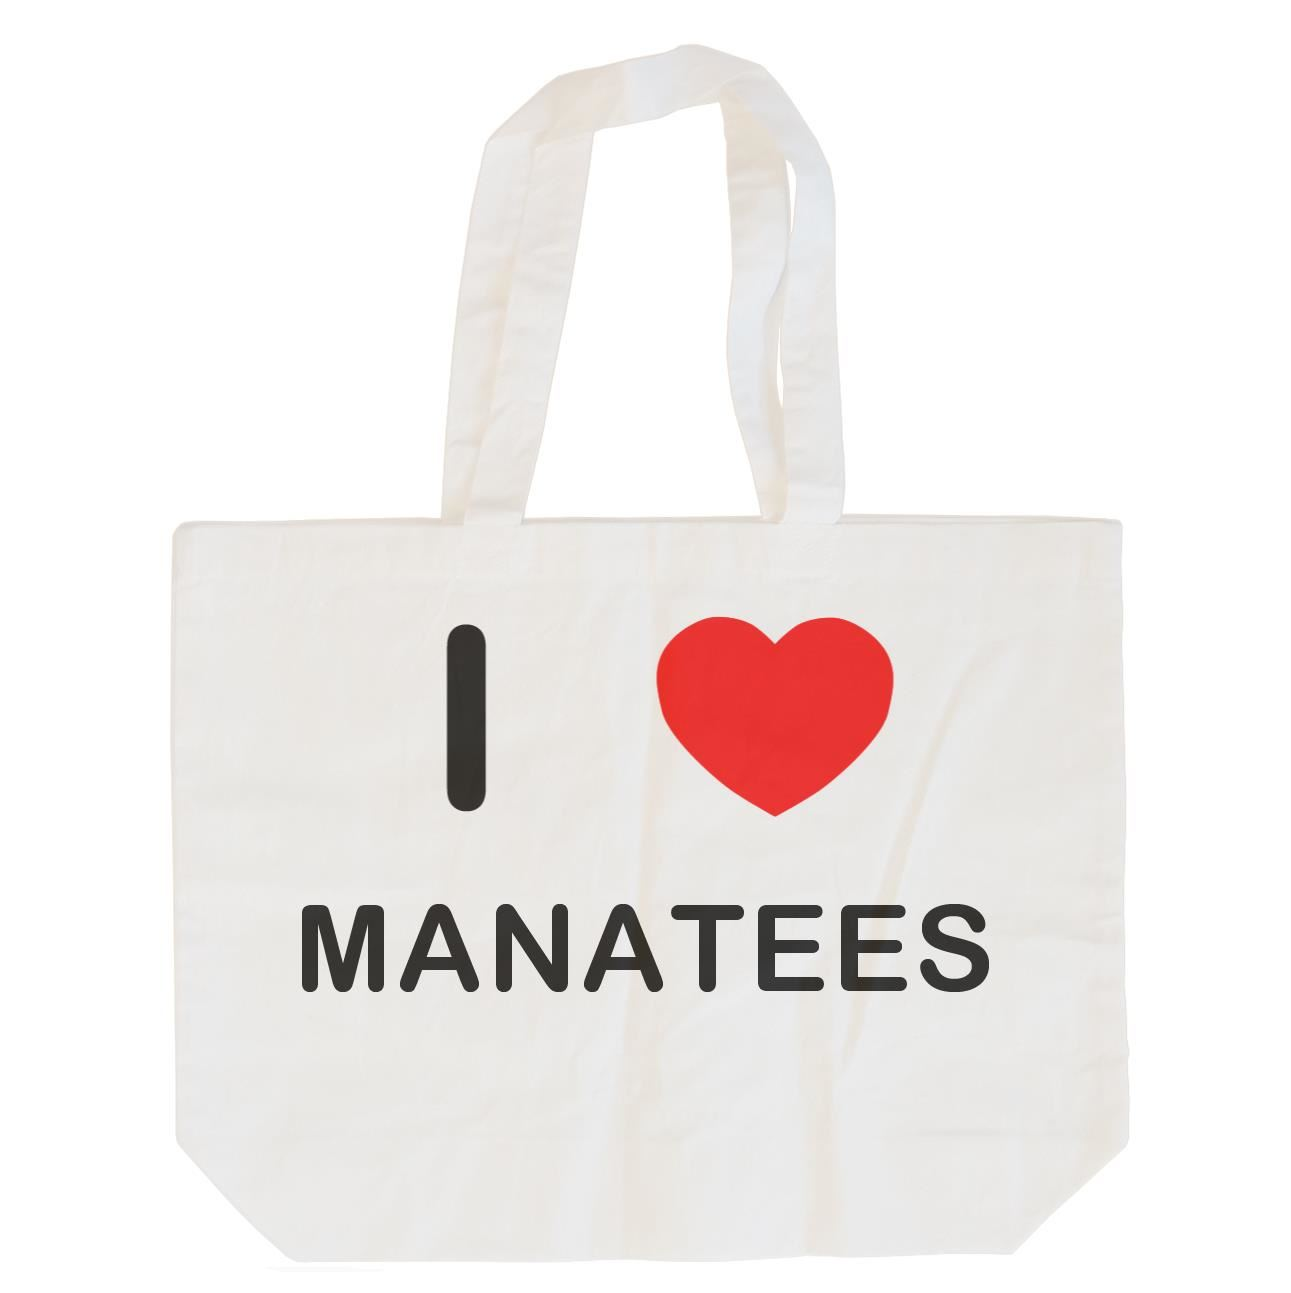 I Love Manatees - Cotton Bag | Size choice Tote, Shopper or Sling